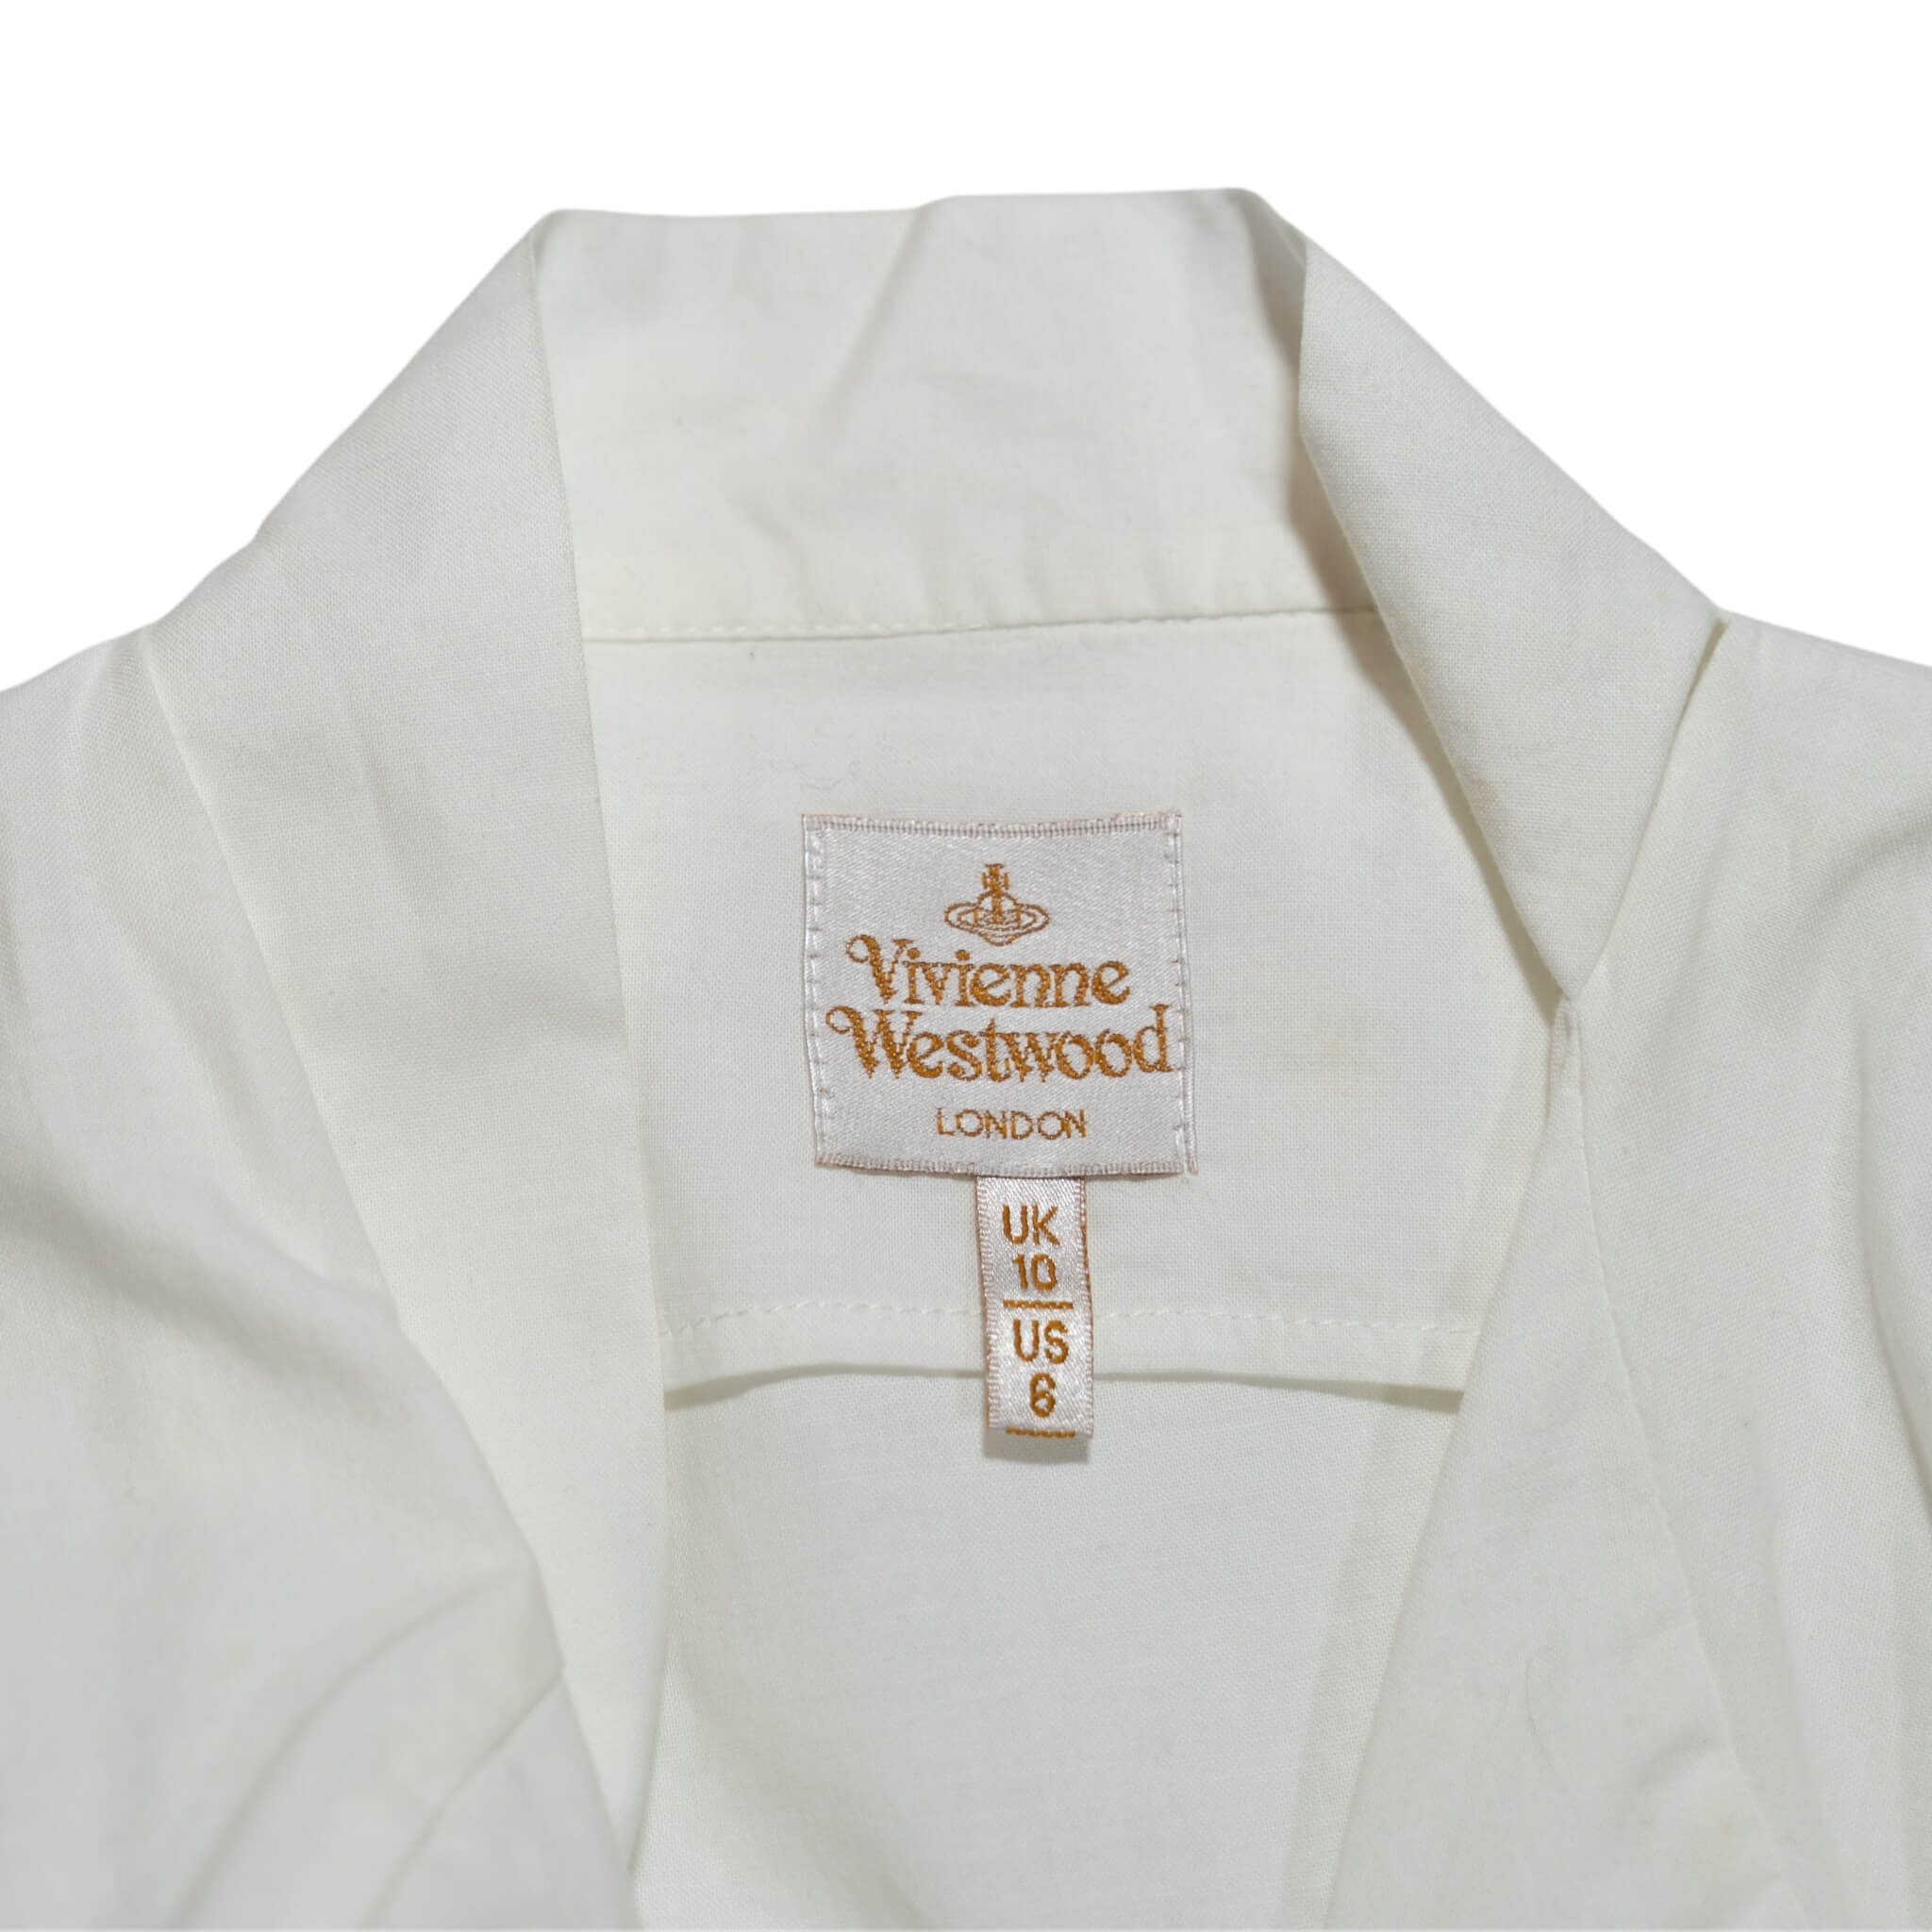 Vivienne Westwood Perfect White Blouse